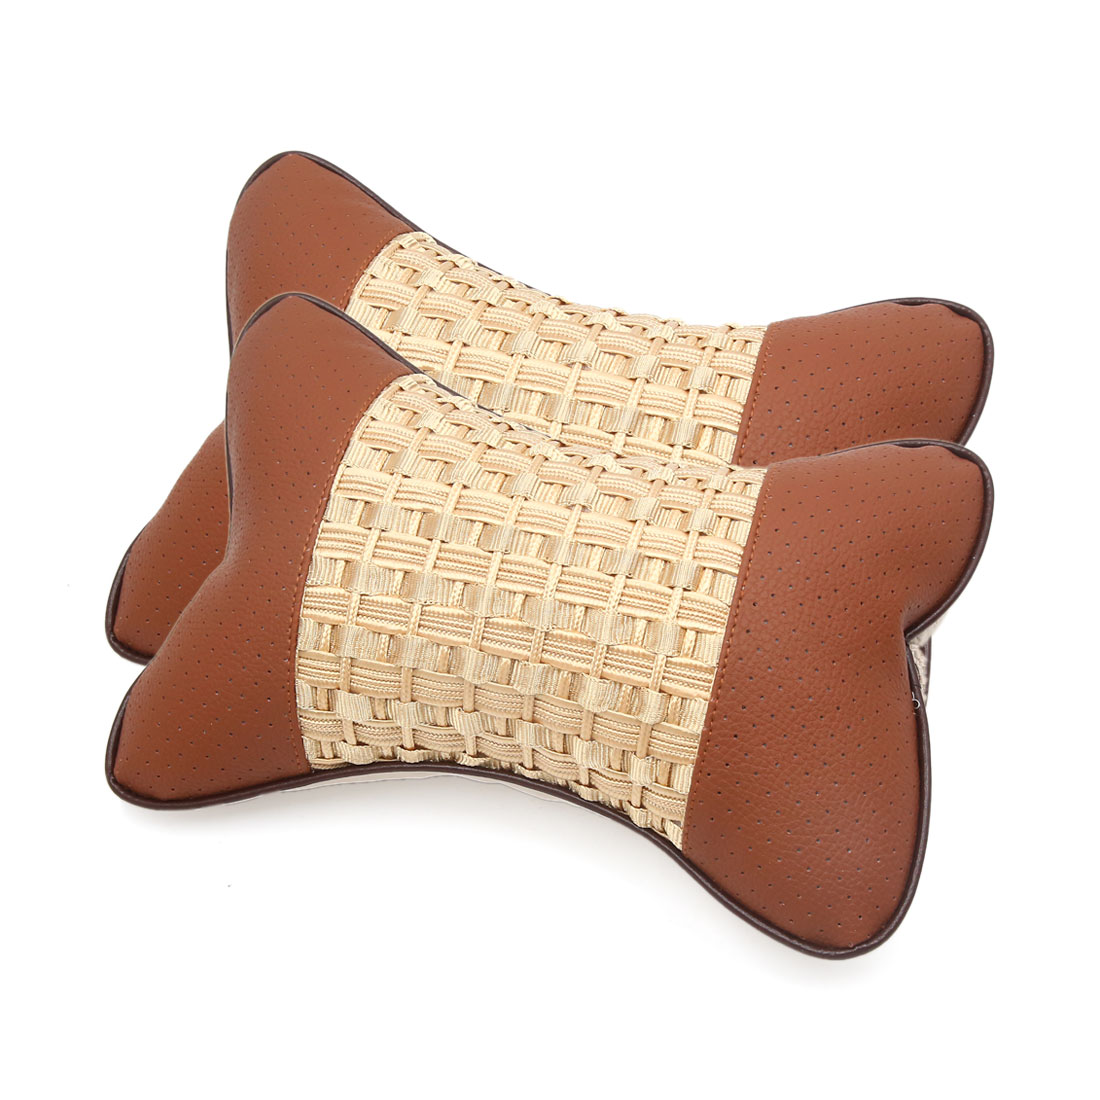 2pcs Brown Faux Leather Fabric Pillow Cushion Headrest Pad for Car Vehicle - image 2 of 2